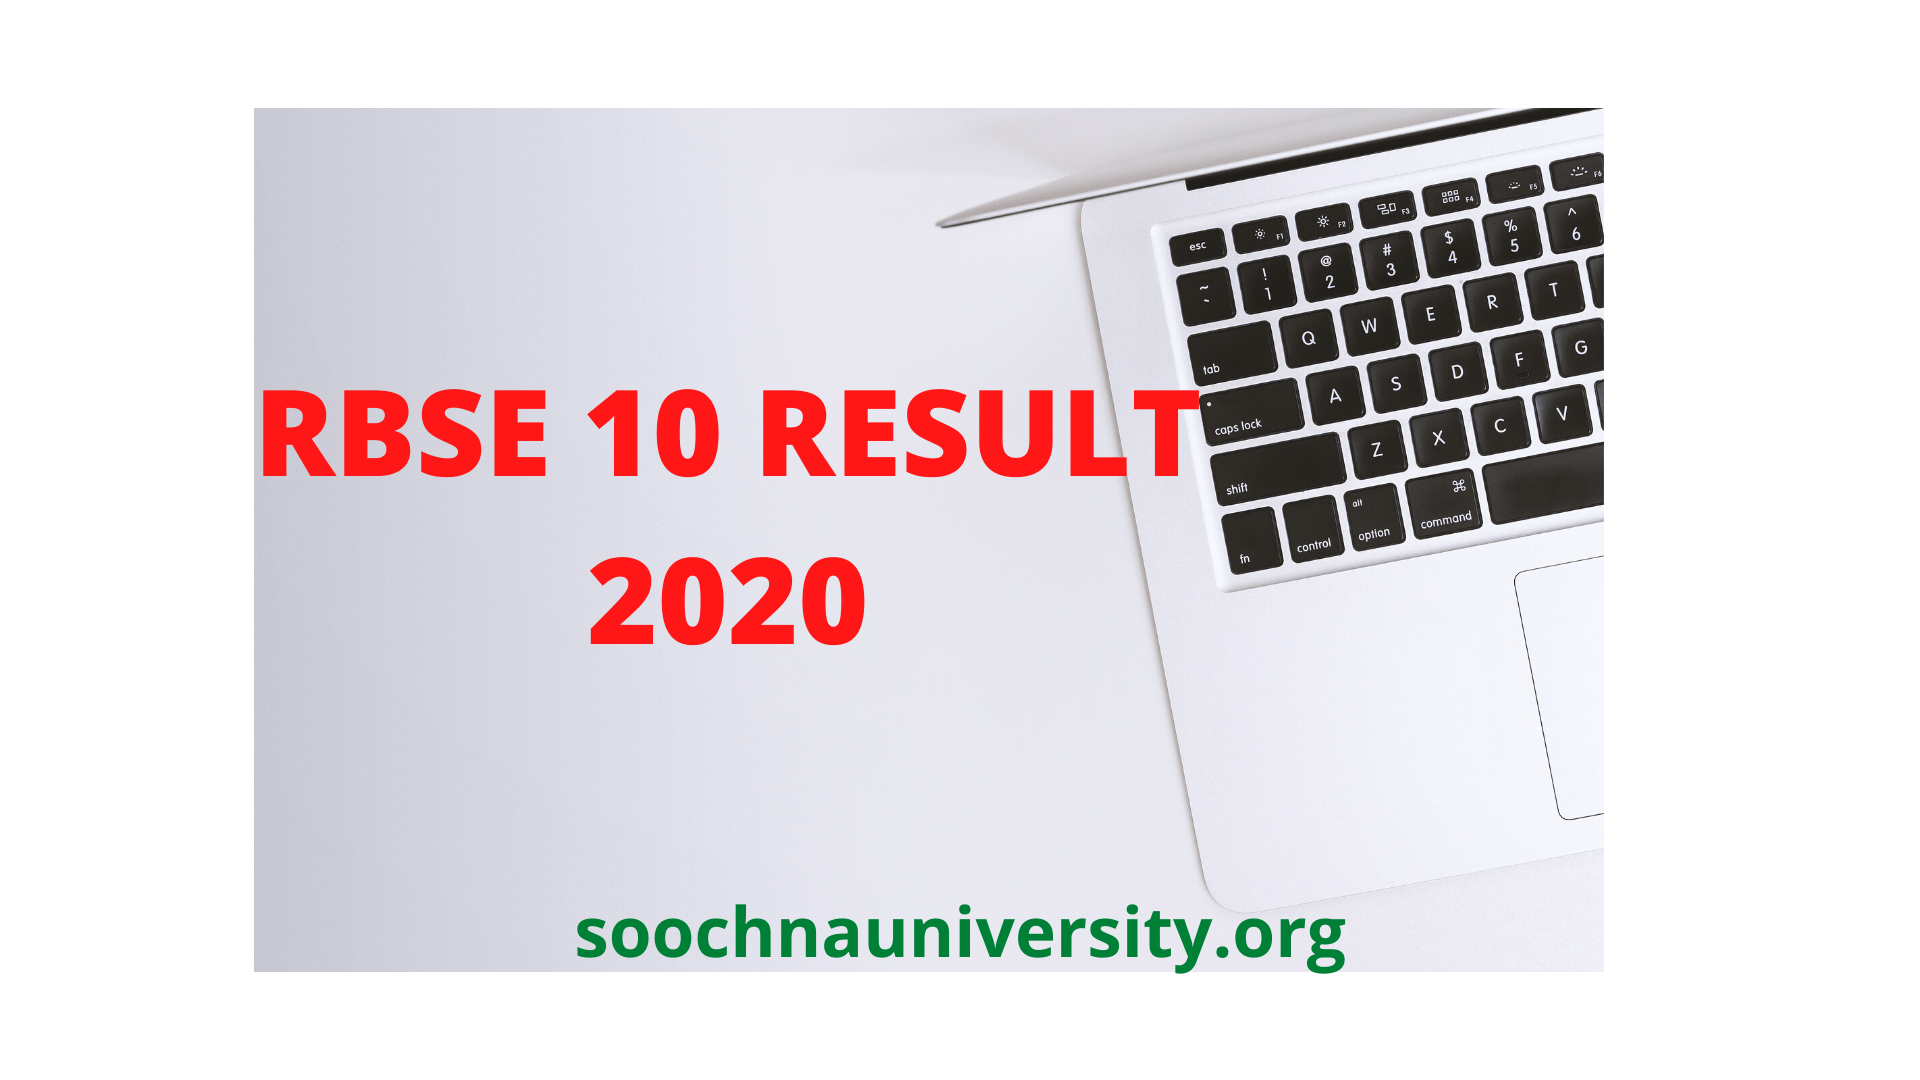 rbse-10-result-2020